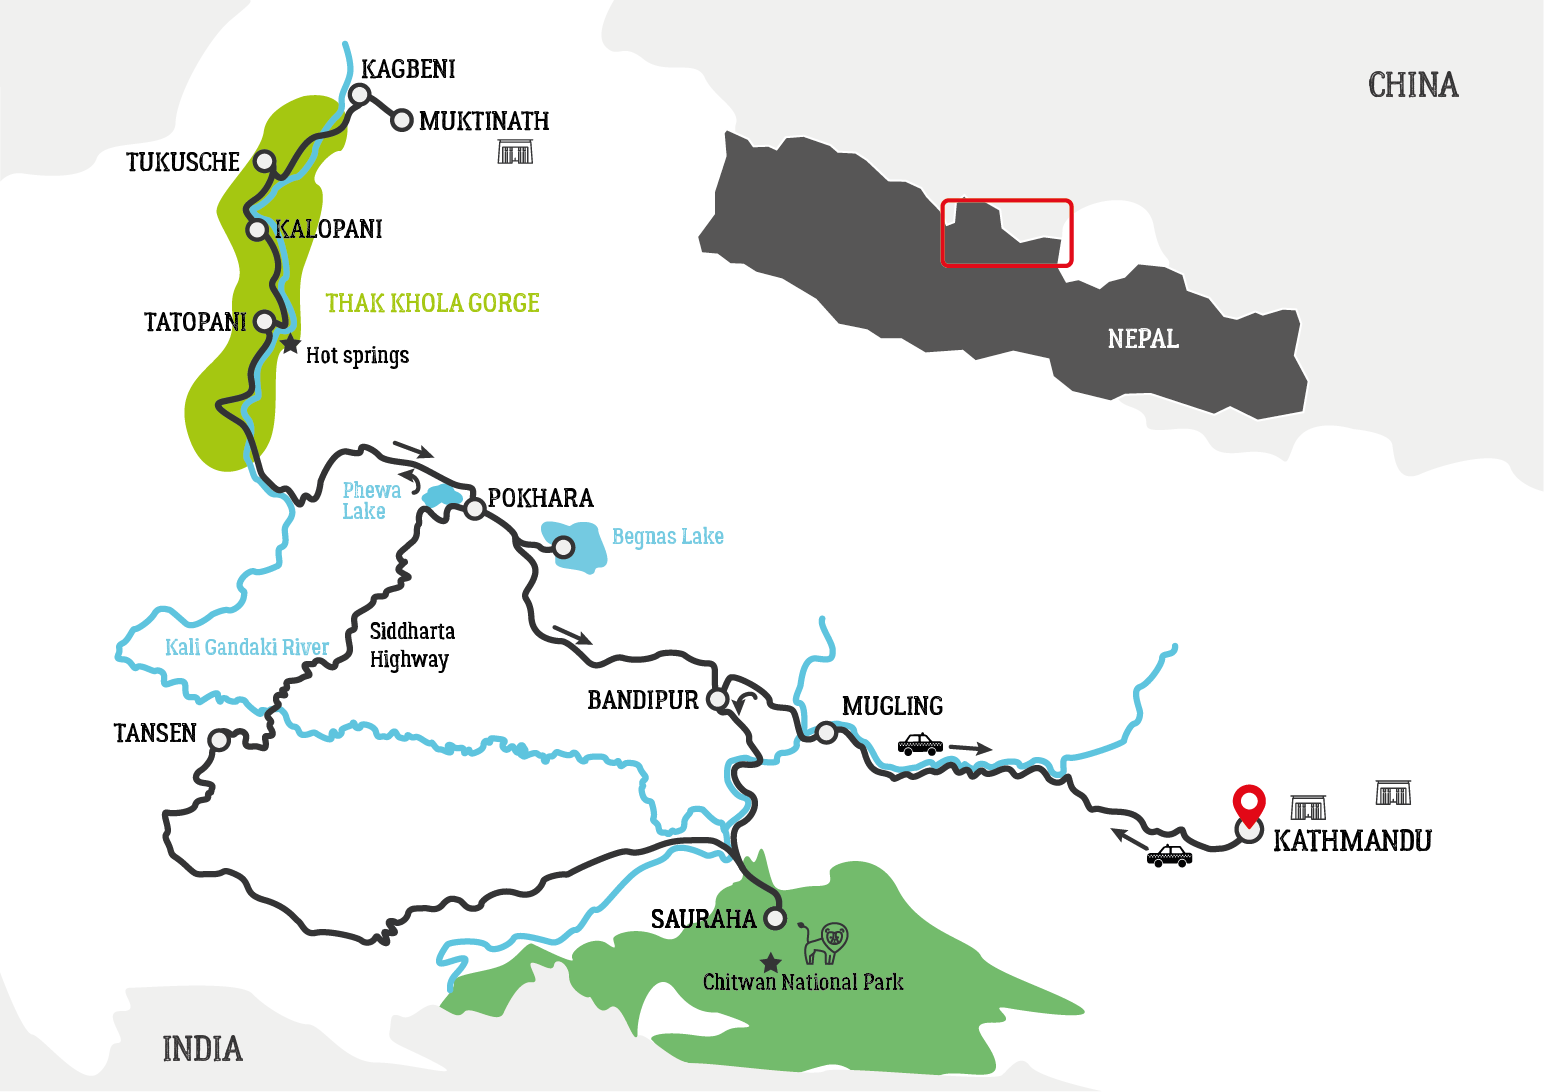 Nepal Mustang motorcycle tour map